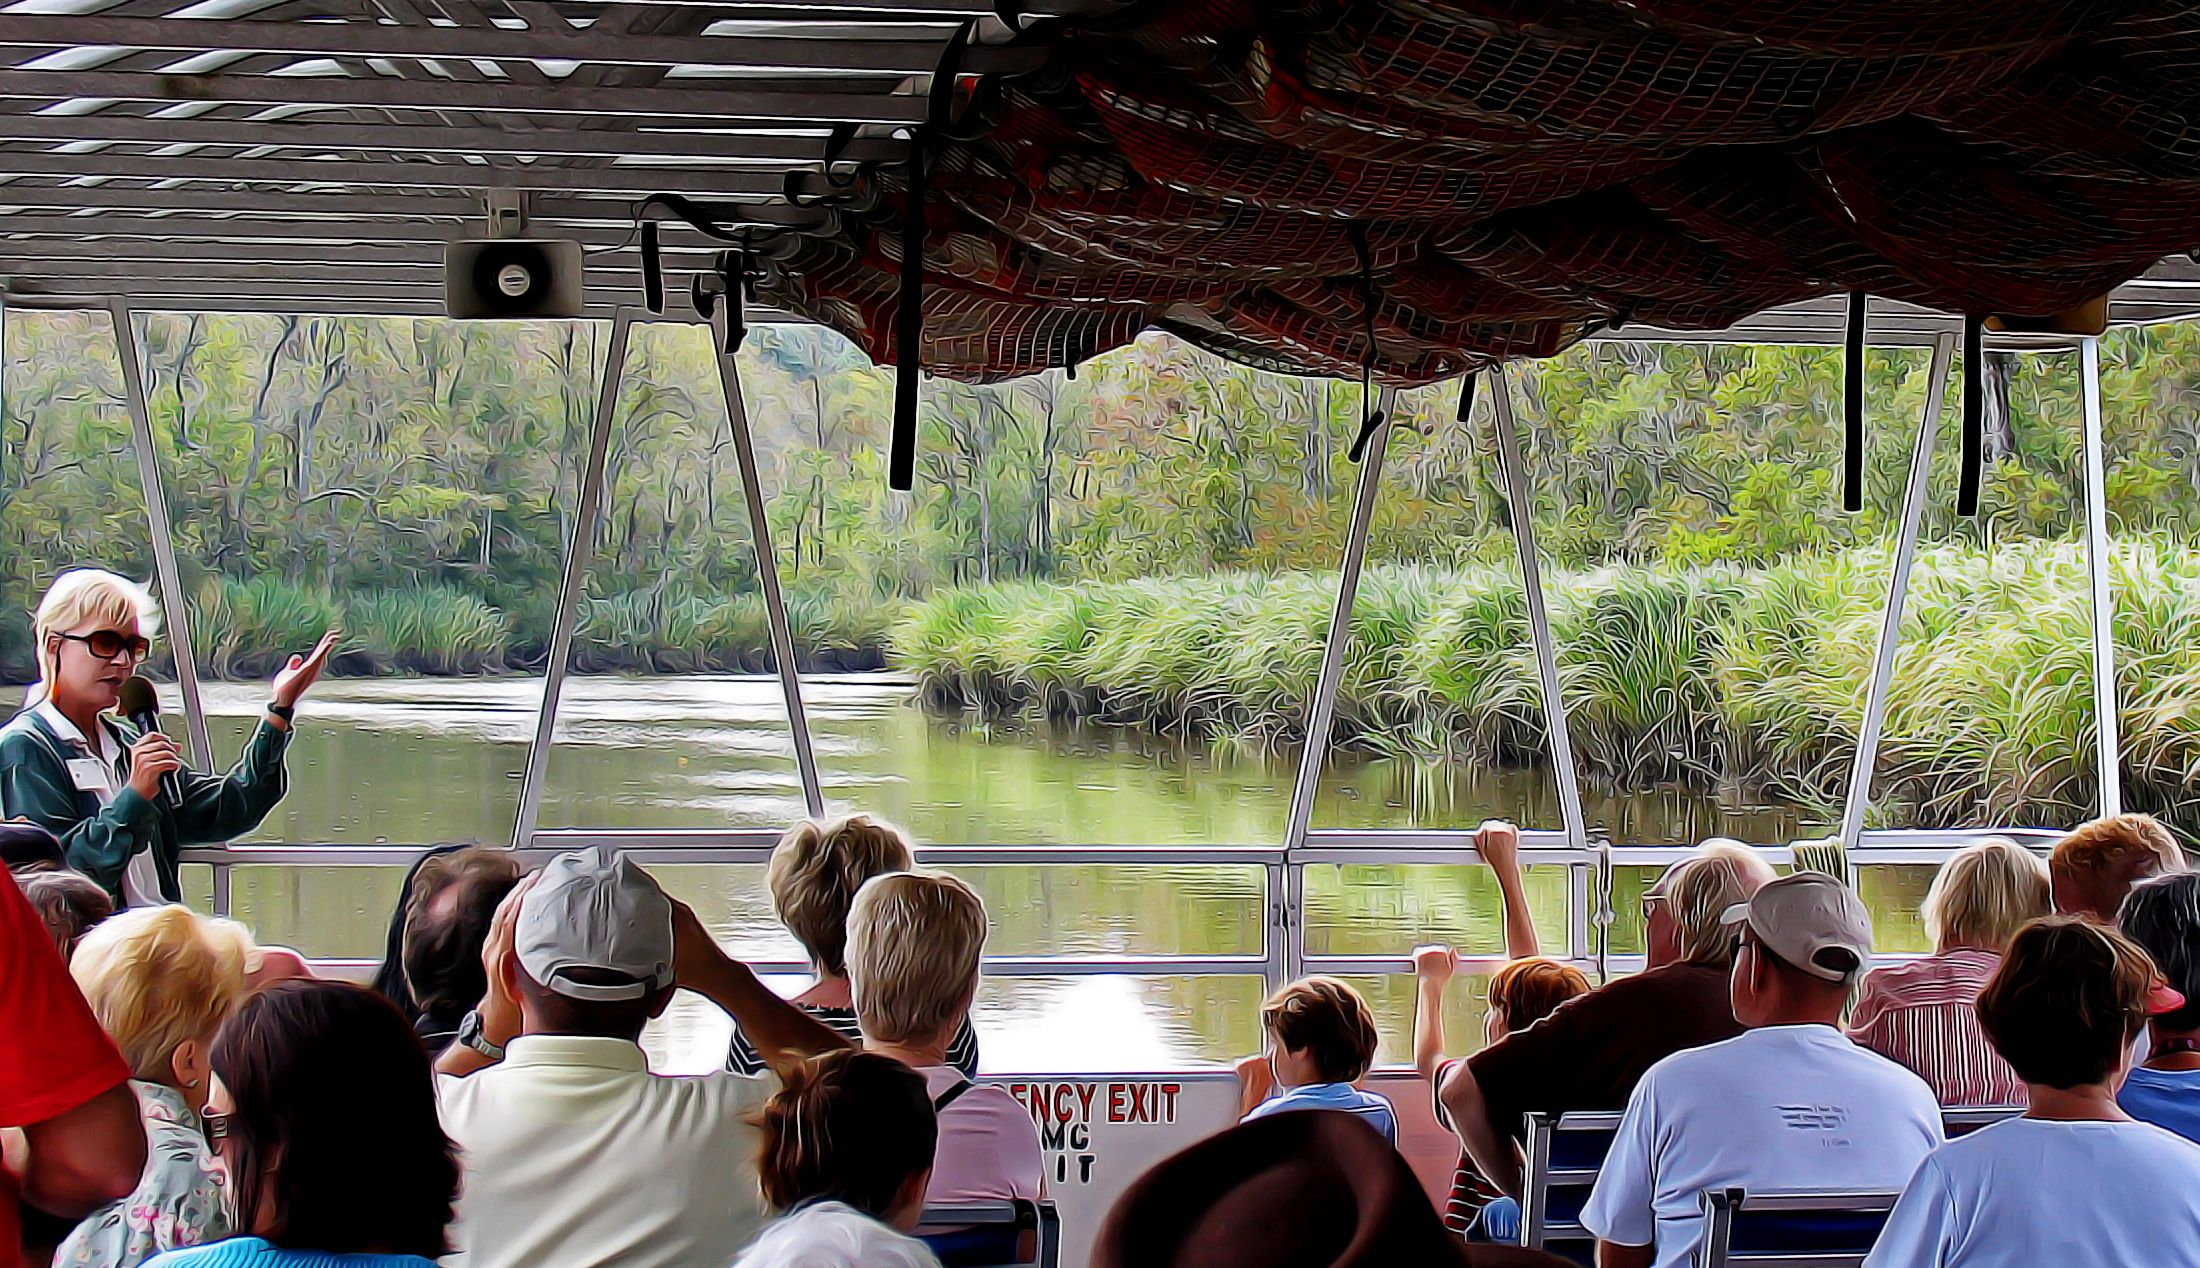 Brookgreen Gardens Waterway River Tour. (With images